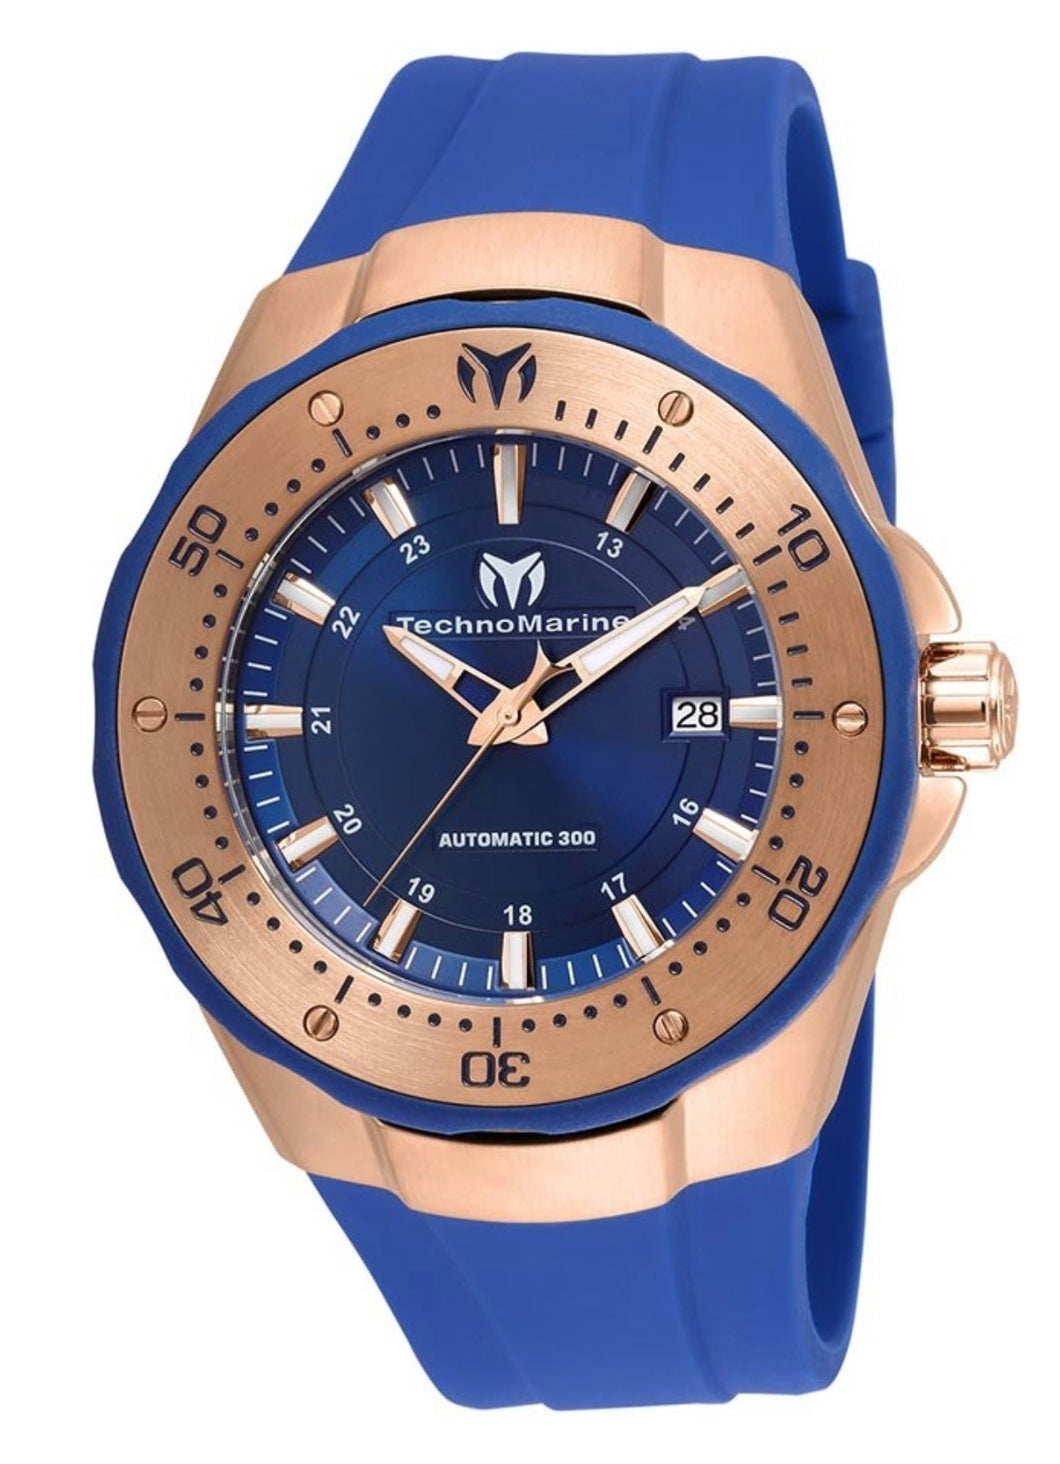 TECHNOMARINE MANTA SEA AUTOMATIC MENS 48 STAINLESS STEEL CASE BLUE DIAL - MODEL TM-215087 - Boutique Watches & More